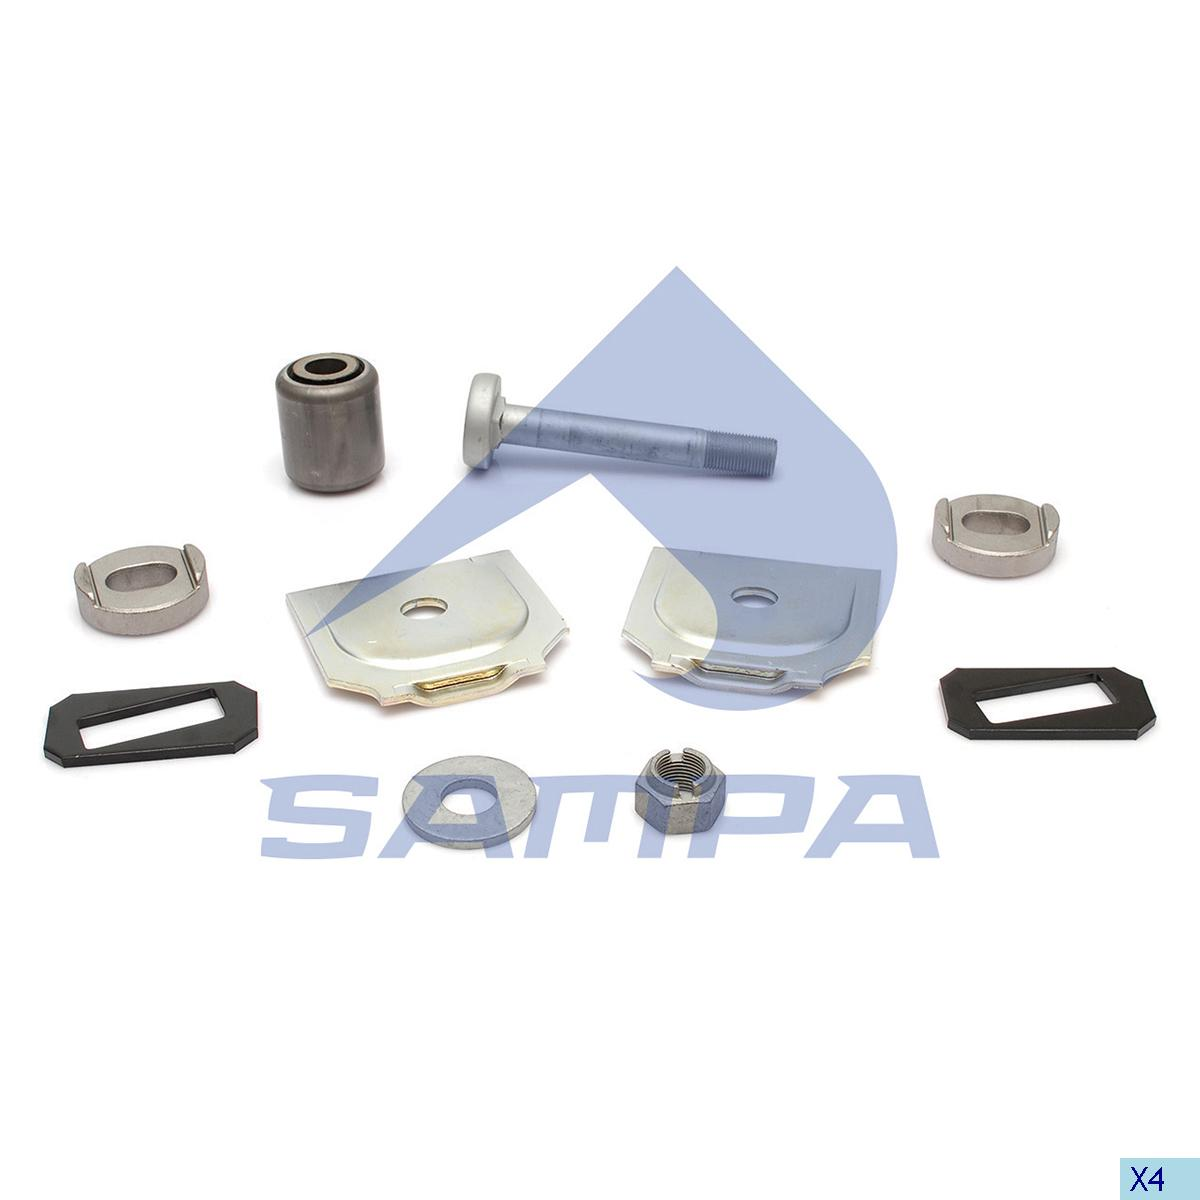 Repair Kit, Spring, Bergische Achsen, Suspension